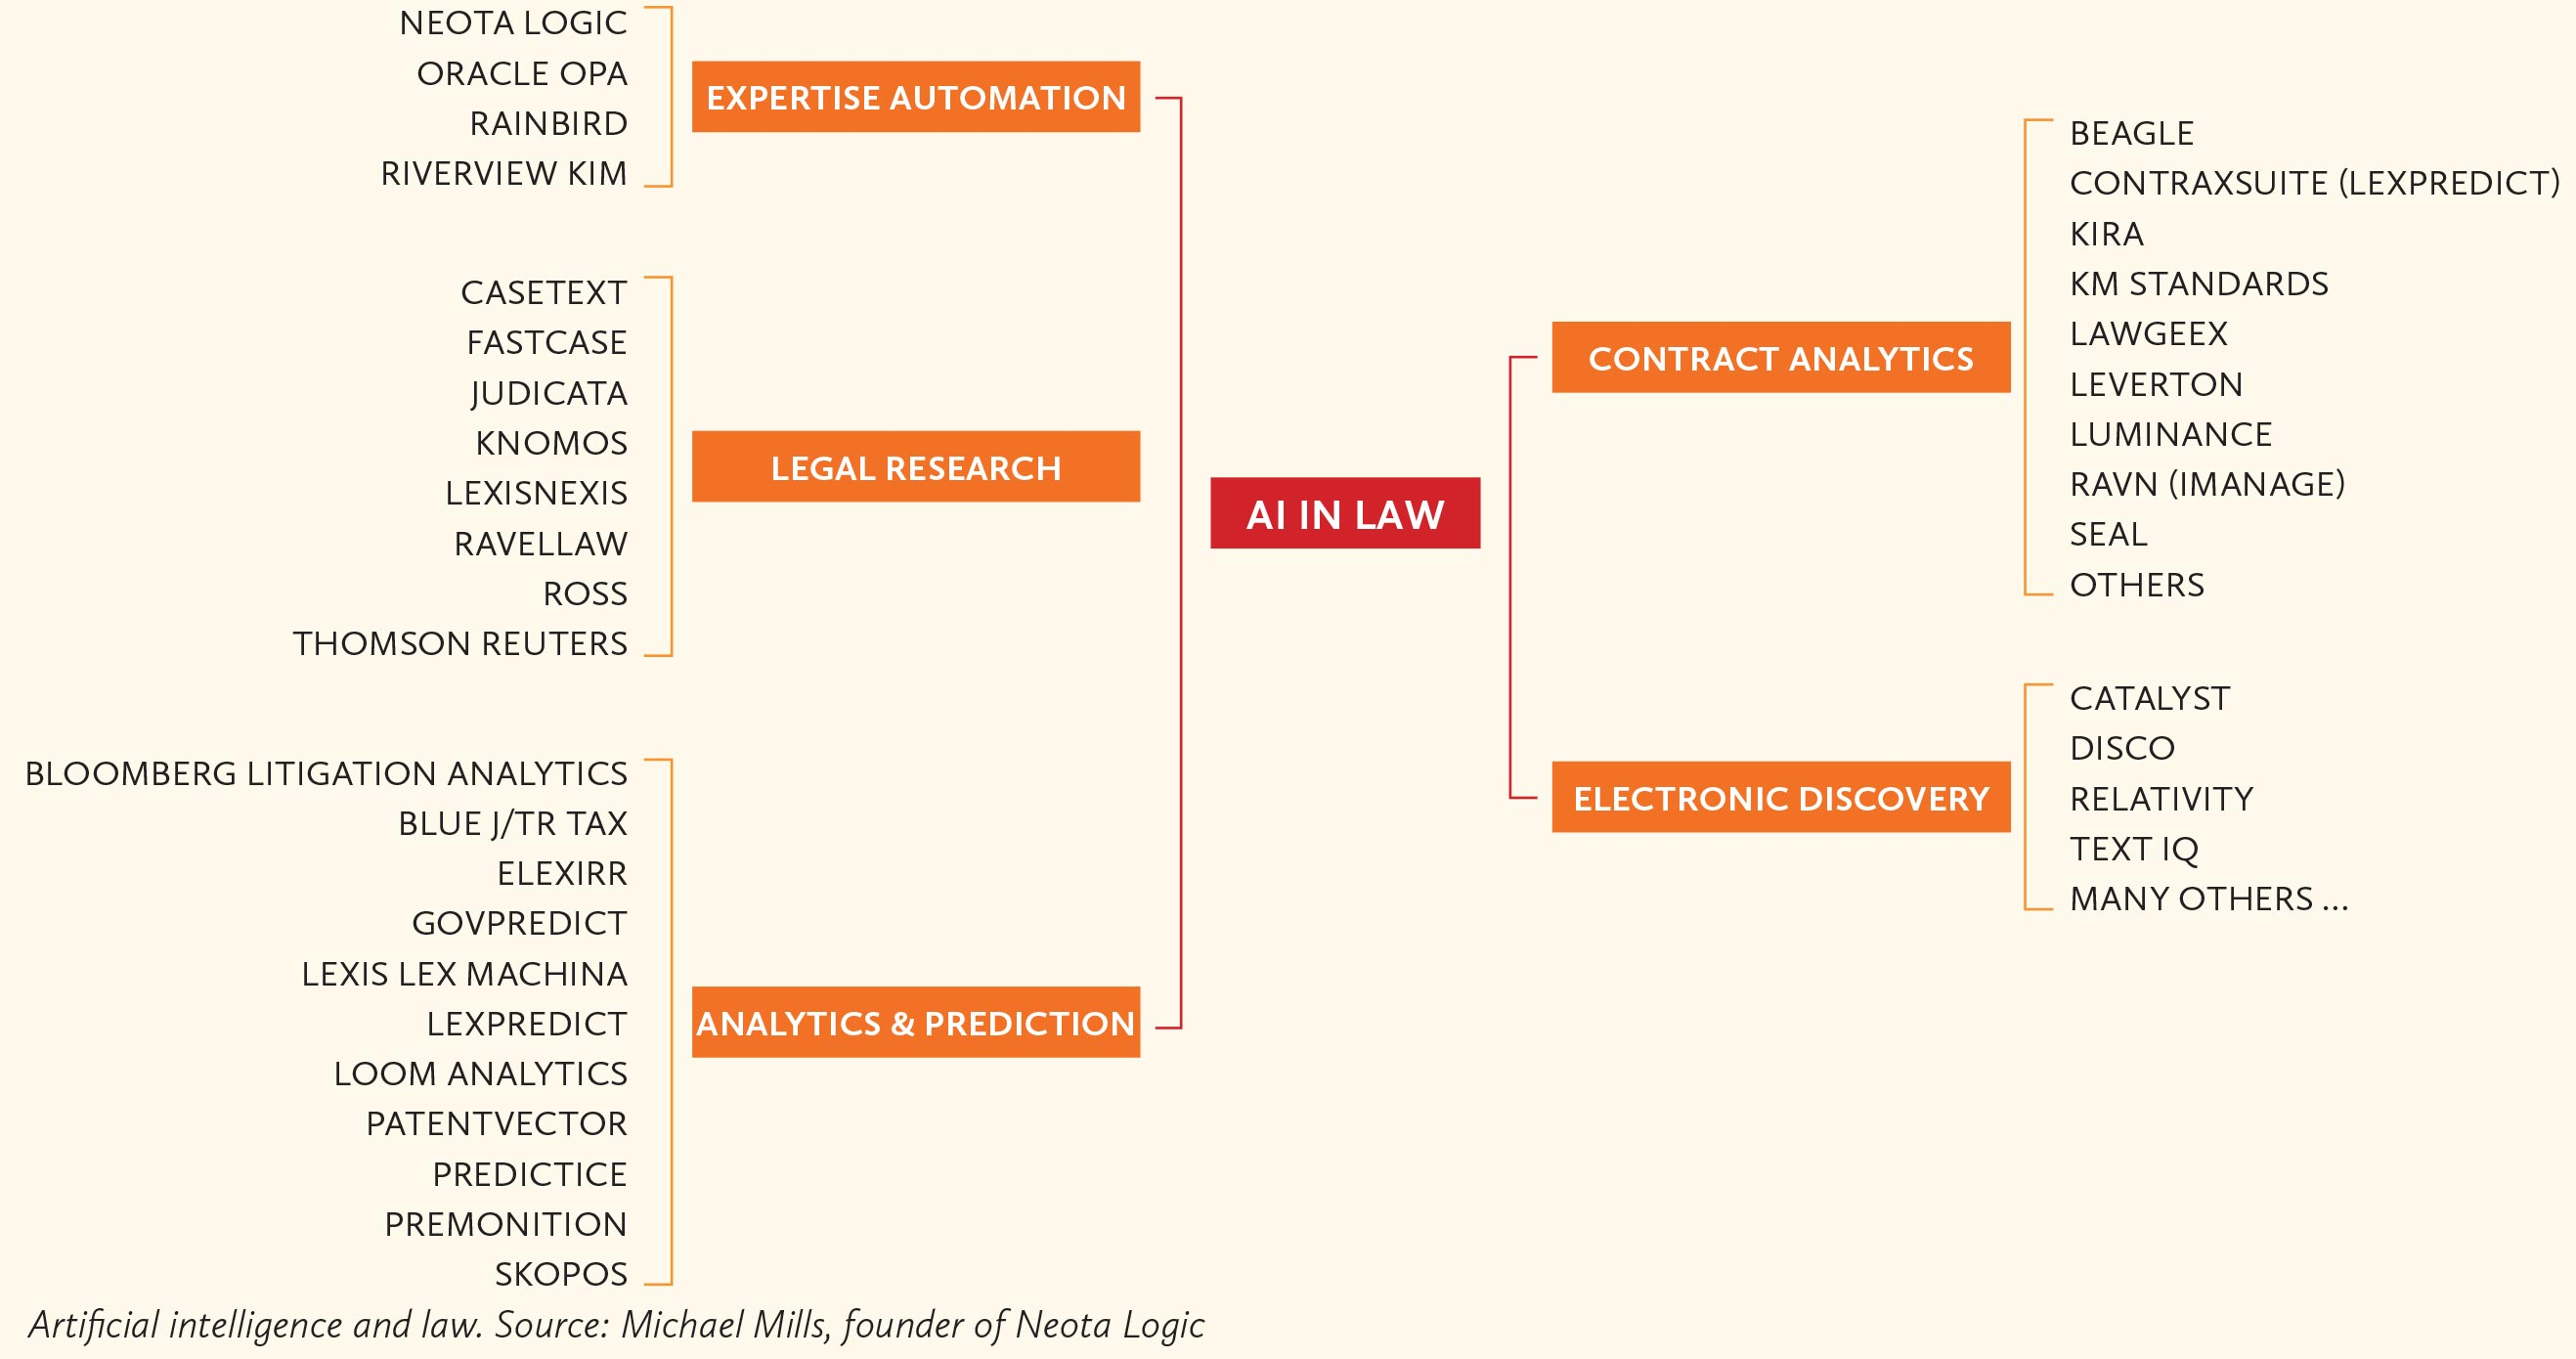 Artificial-intelligence-and-law-Michael-Mills,-founder-of-Neota-Logic